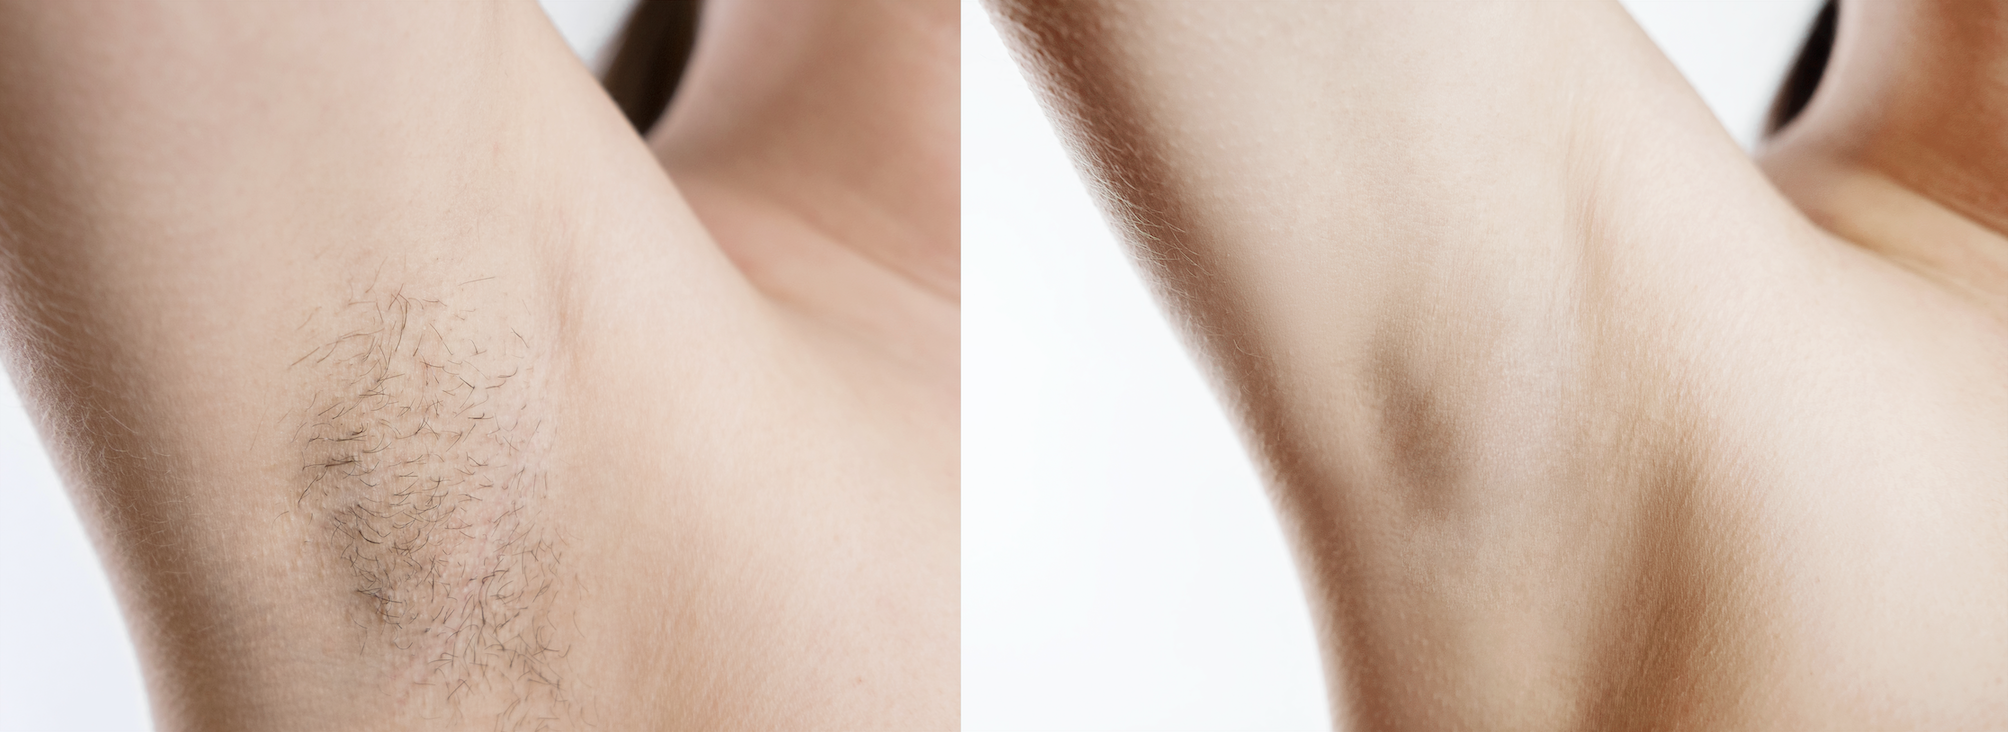 Underarm Laser Hair Removal Before After Pictures